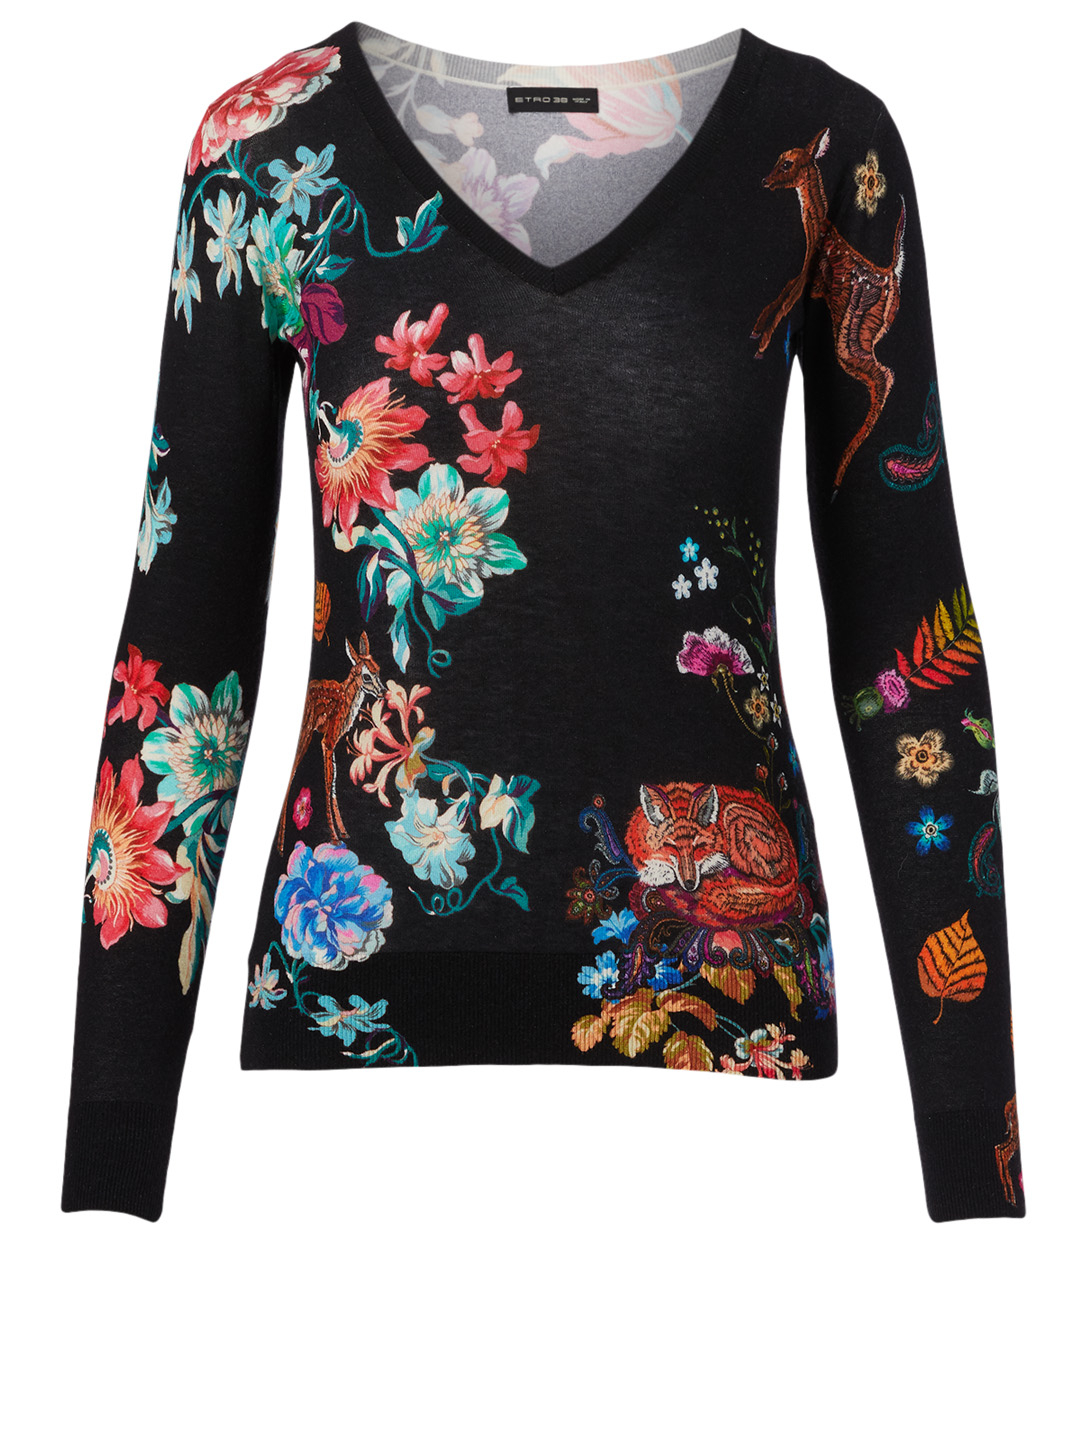 ETRO Silk And Cashmere Sweater In Floral Print Women's Black